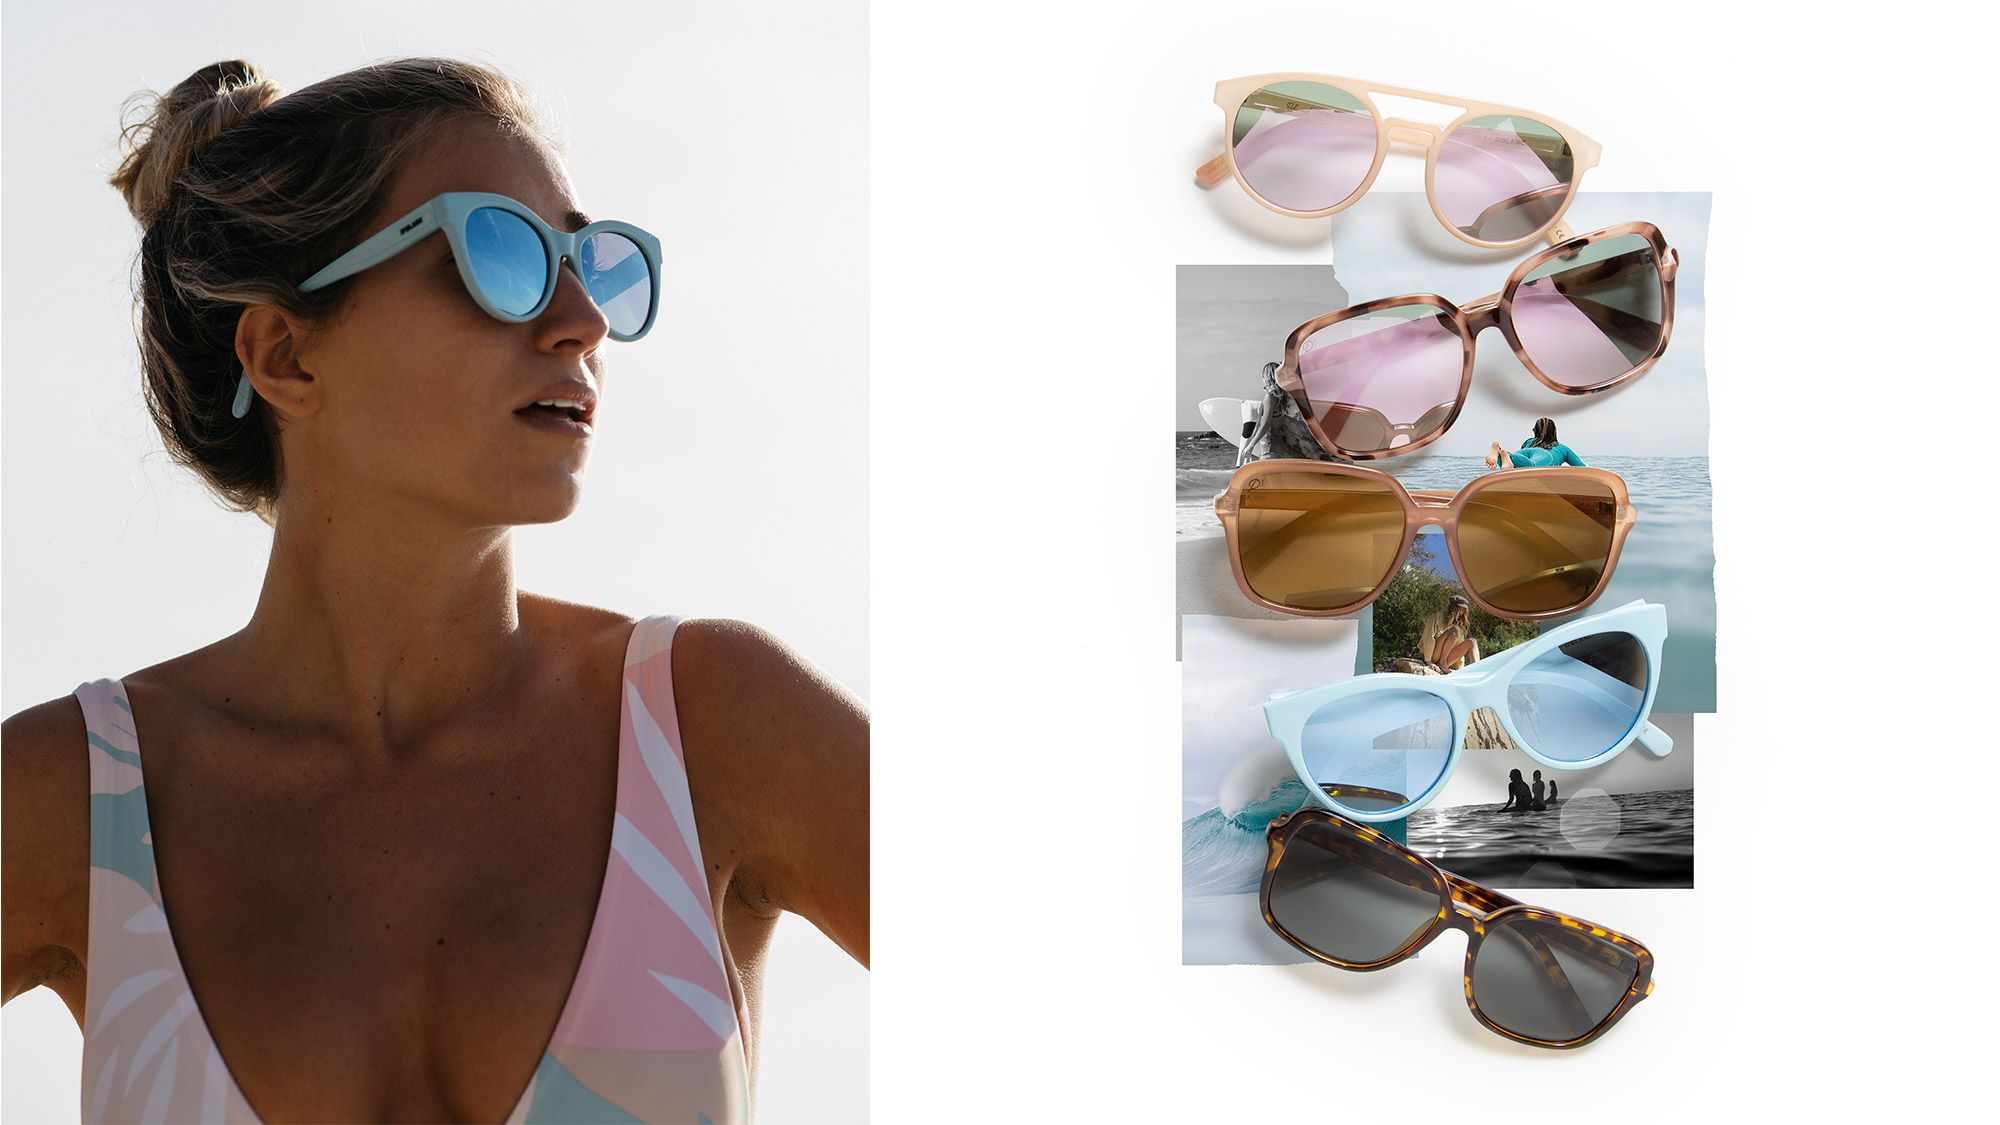 Designed for creators, swell followers and adventure seekers, our Sisstrevolution for D'Blanc collection brings spring colors and polarized lenses together in perfect harmony to create a go-to spread of frames for all sea-loving Sisstrs alike. Featuring a touch of coral on each frames tip, this polarized collection serves as an excuse to get us closer to the sea and a reminder to sustain its beauty and life.